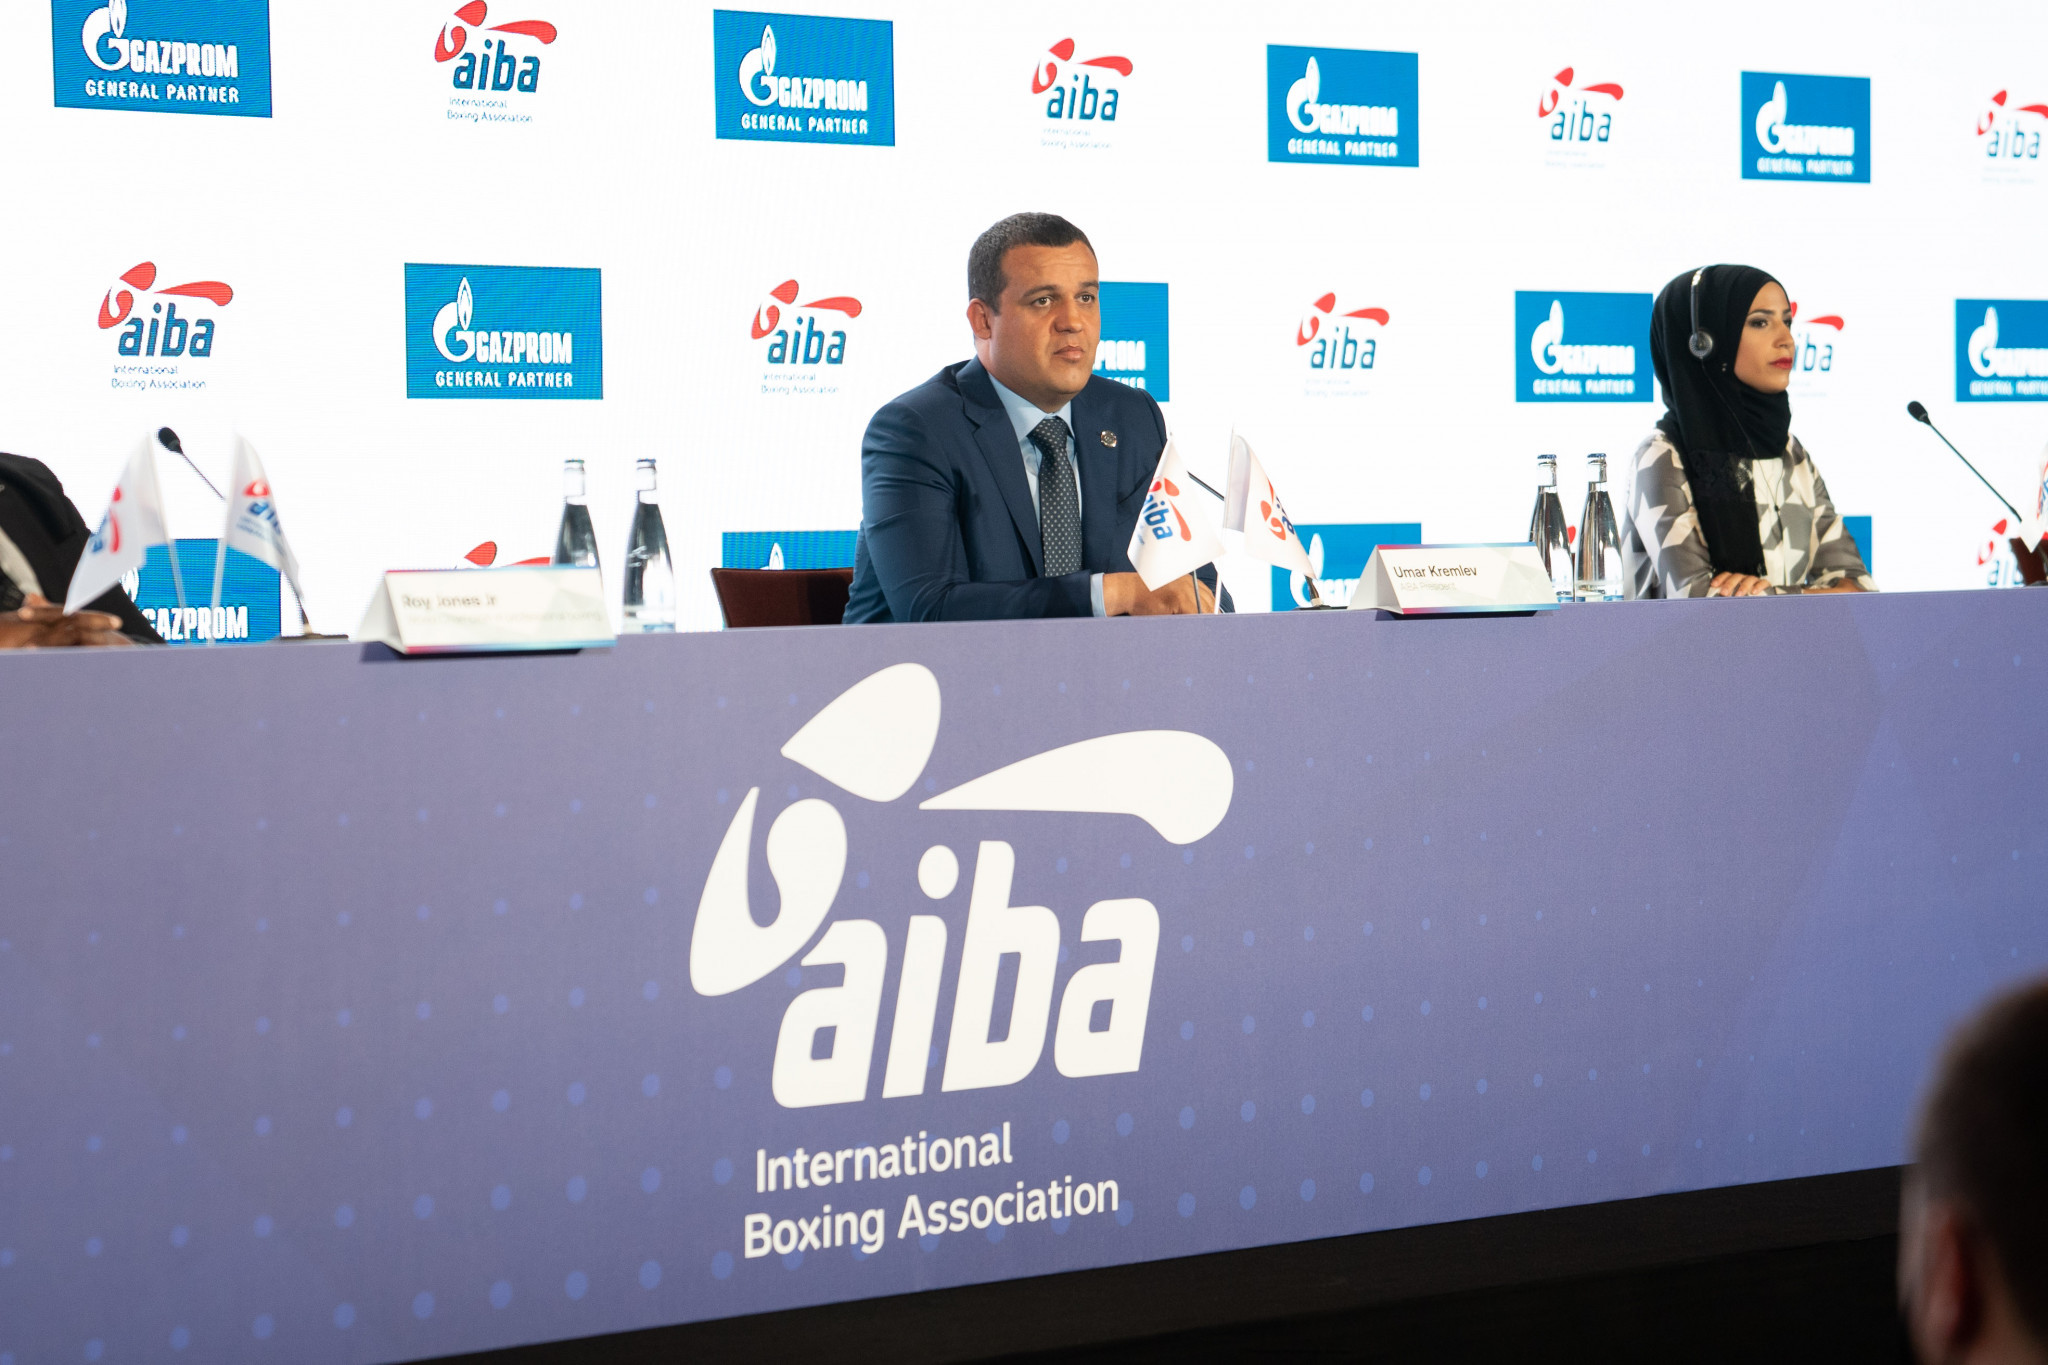 Umar Kremlev has vowed to meet the demands set out by the IOC as AIBA seeks to regain its Olympic status ©AIBA